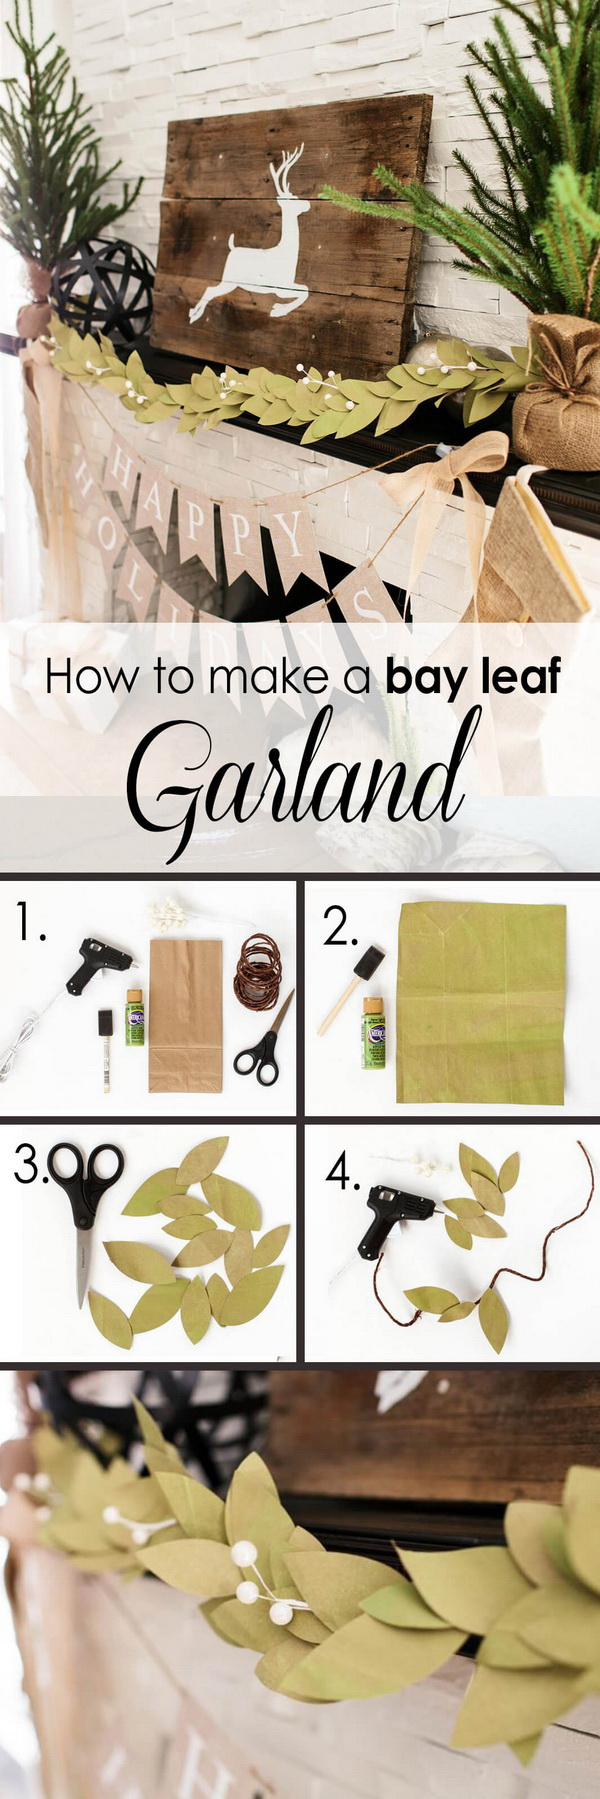 DIY Bay Leaf Garland.